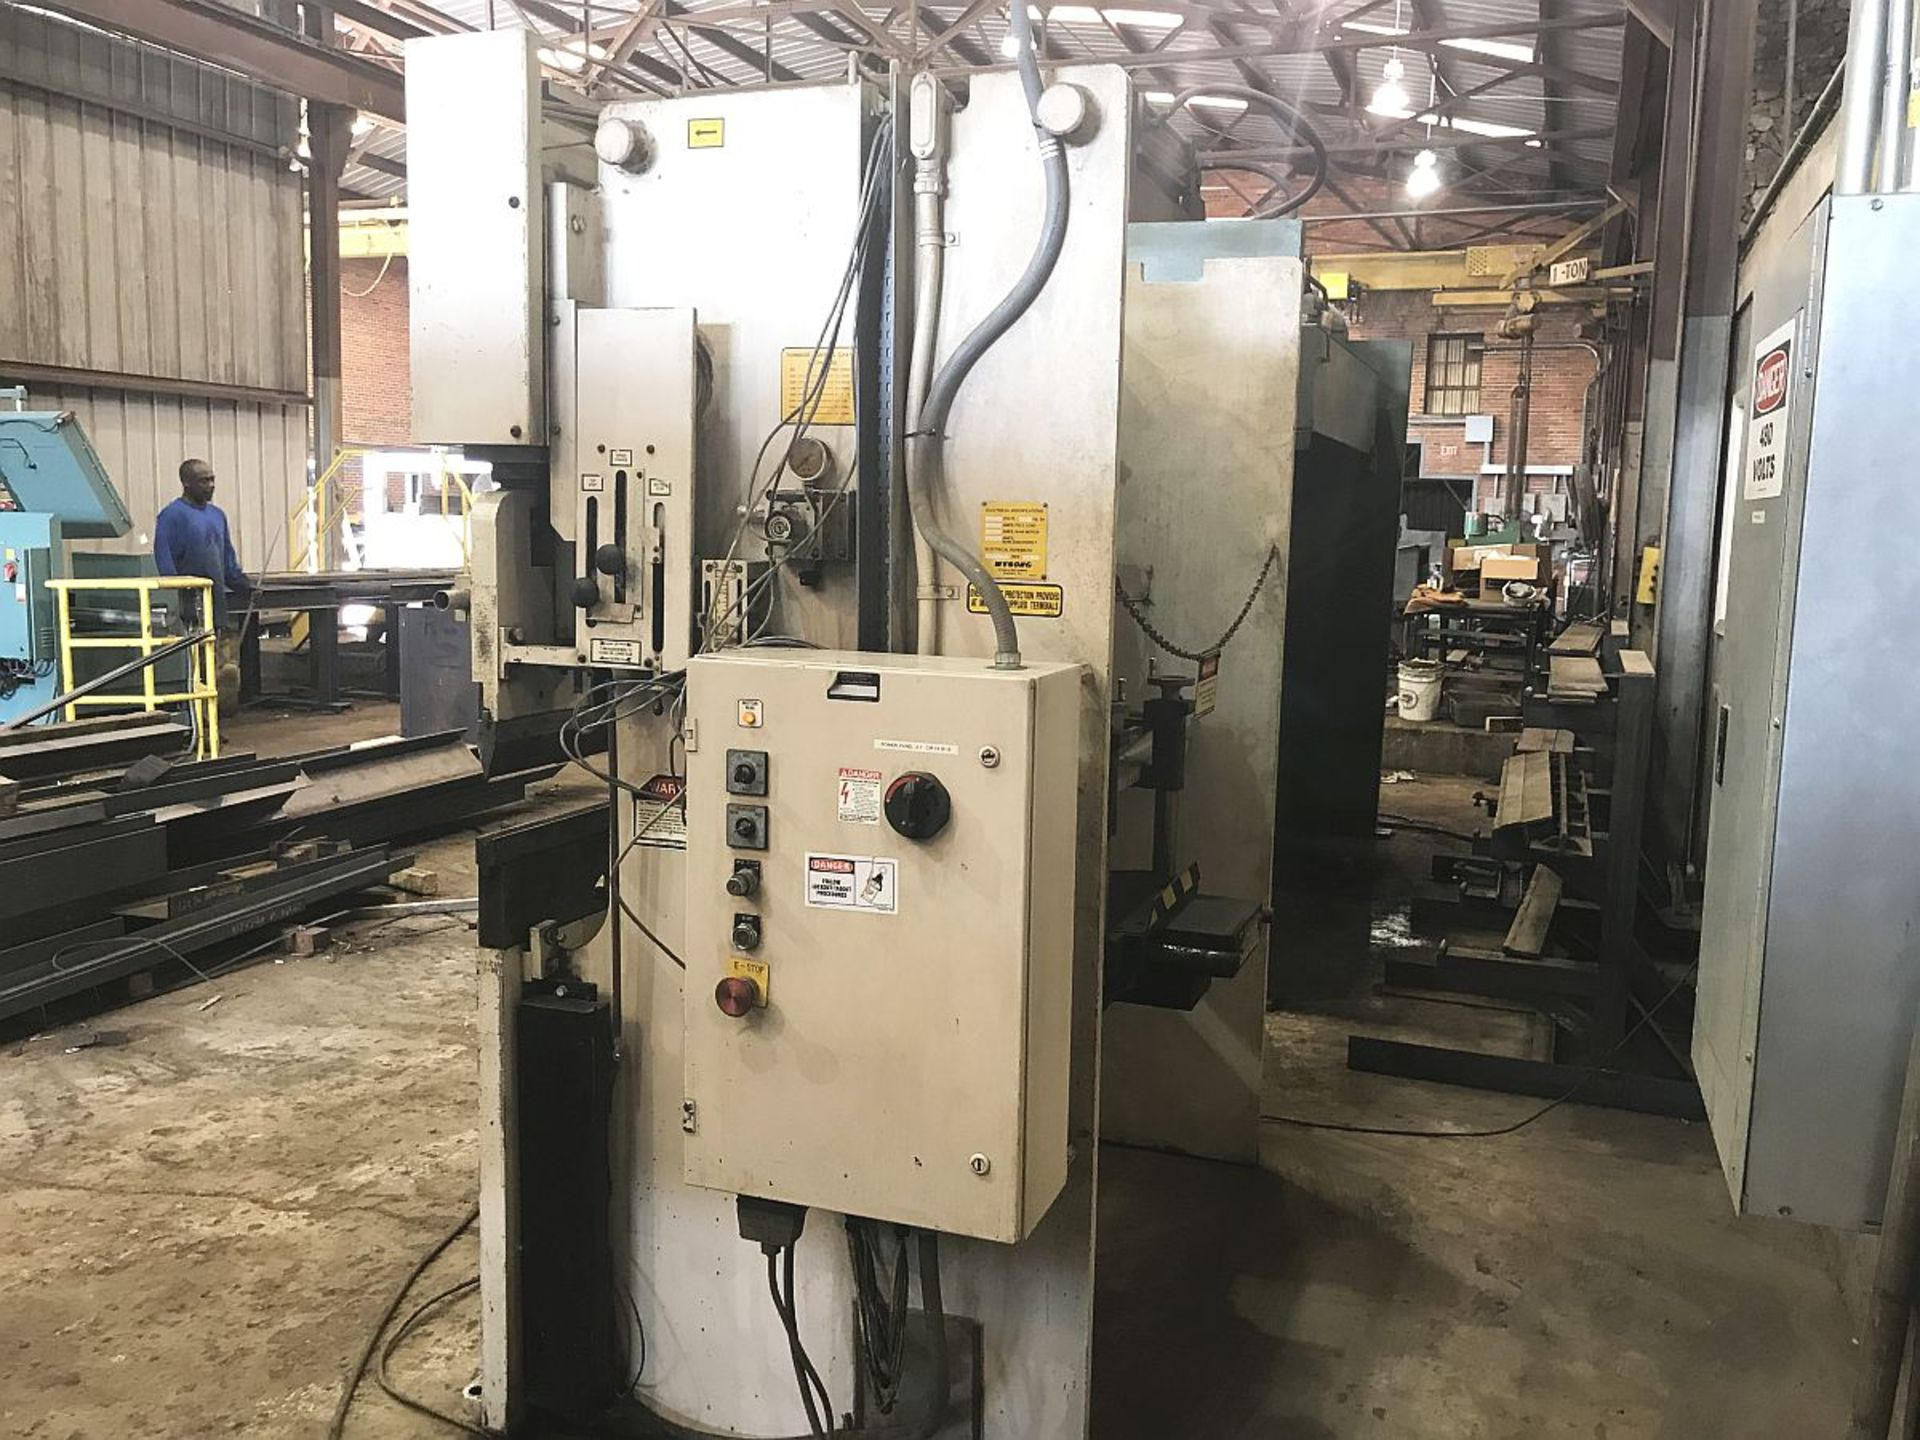 "Lot 249 - Wysong Press Brake, Mdl MTH60-72, 60 ton x 72"" cap., 61.75"" BH, 6"" Stroke, Hurco Autobend 7 Control,"